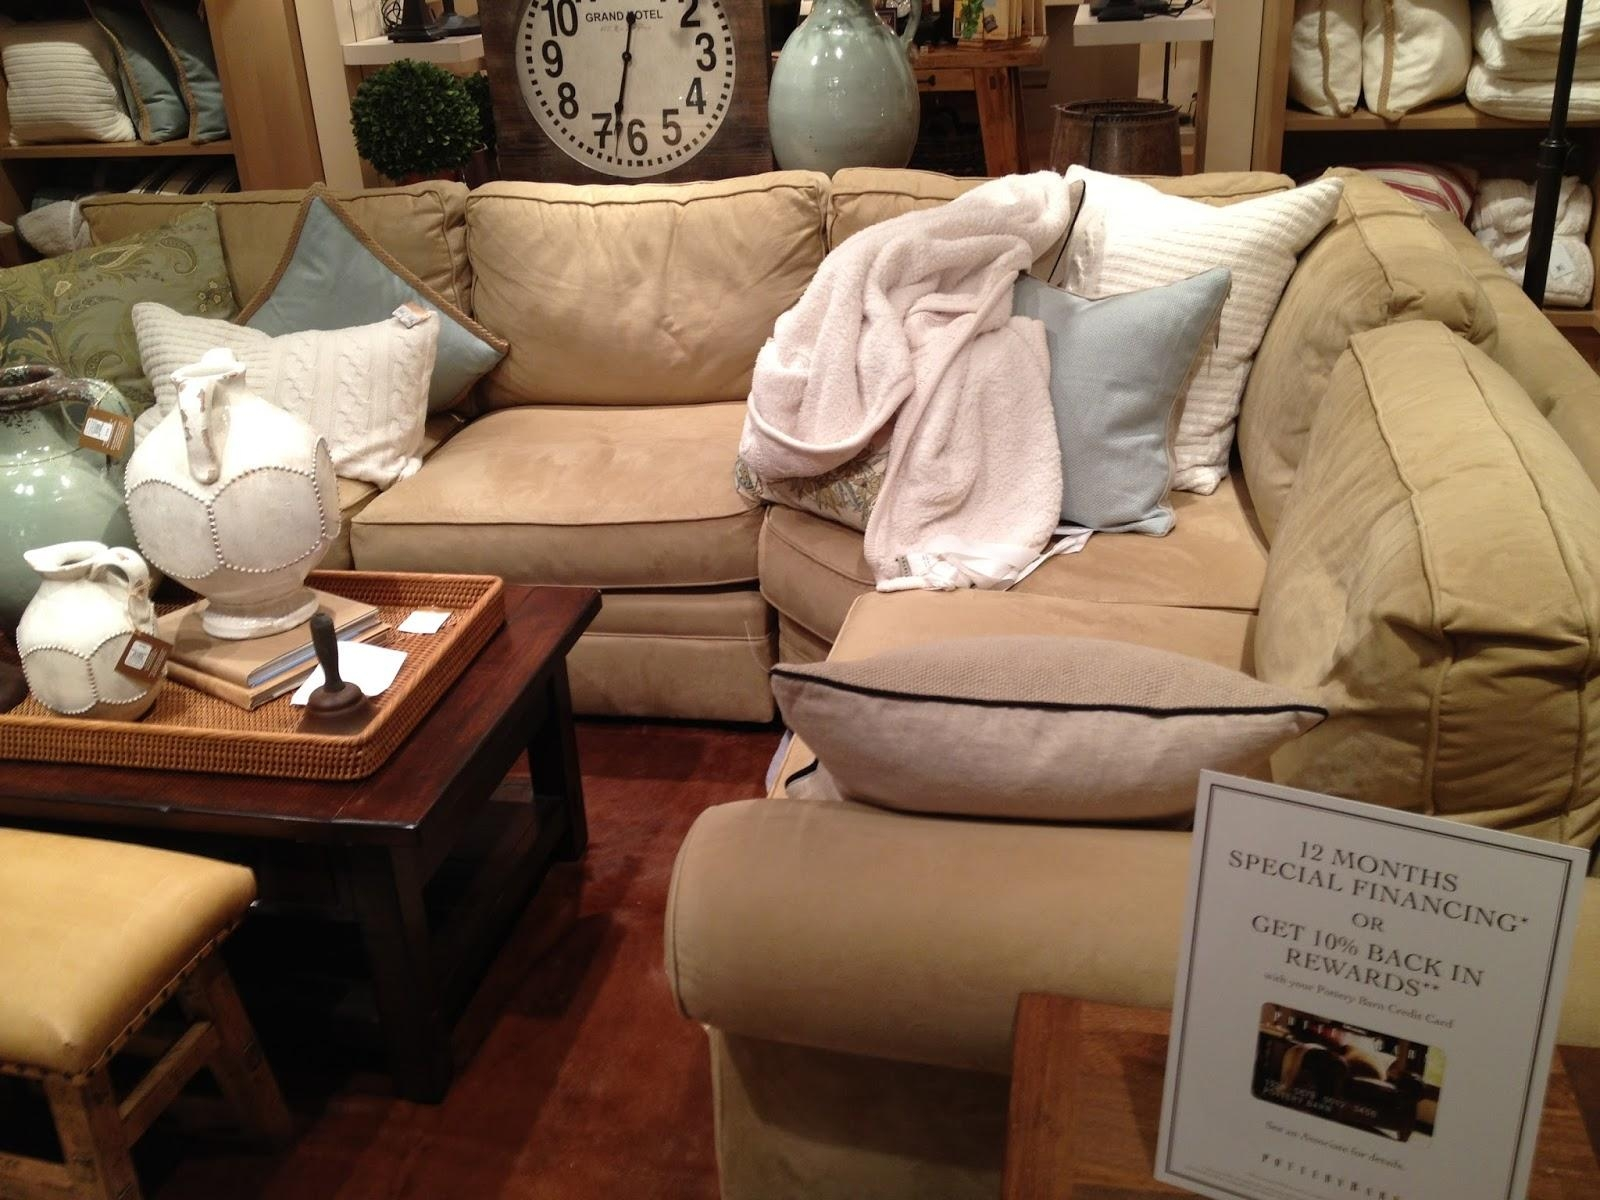 Down Filled Sectional Sofas | Interior Design Within Down Filled Sectional Sofa (View 4 of 15)